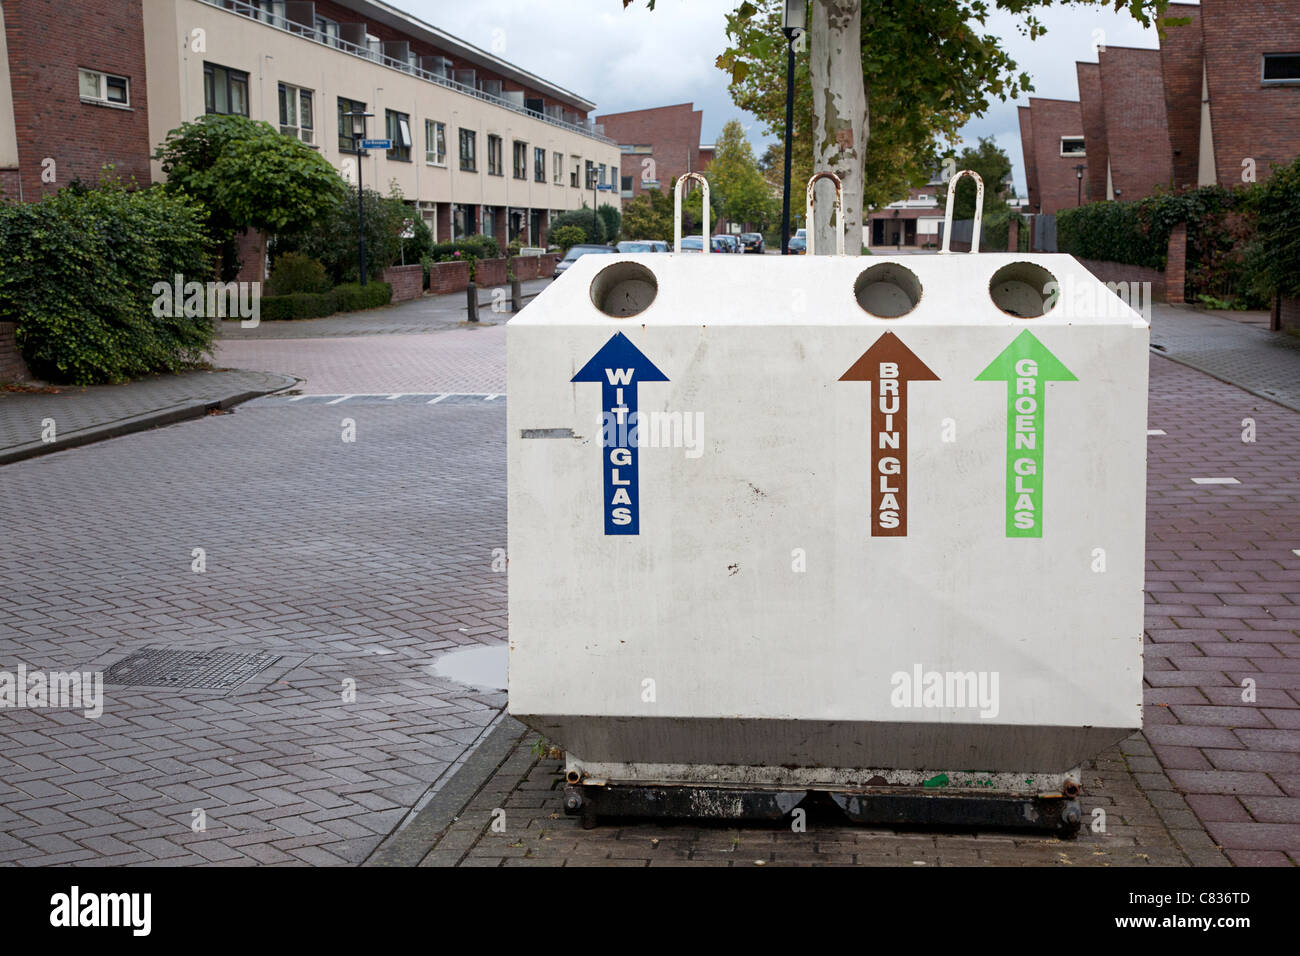 Bottle bank to separate different colors of glass, Alblasserdam, South-Holland, Netherlands - Stock Image